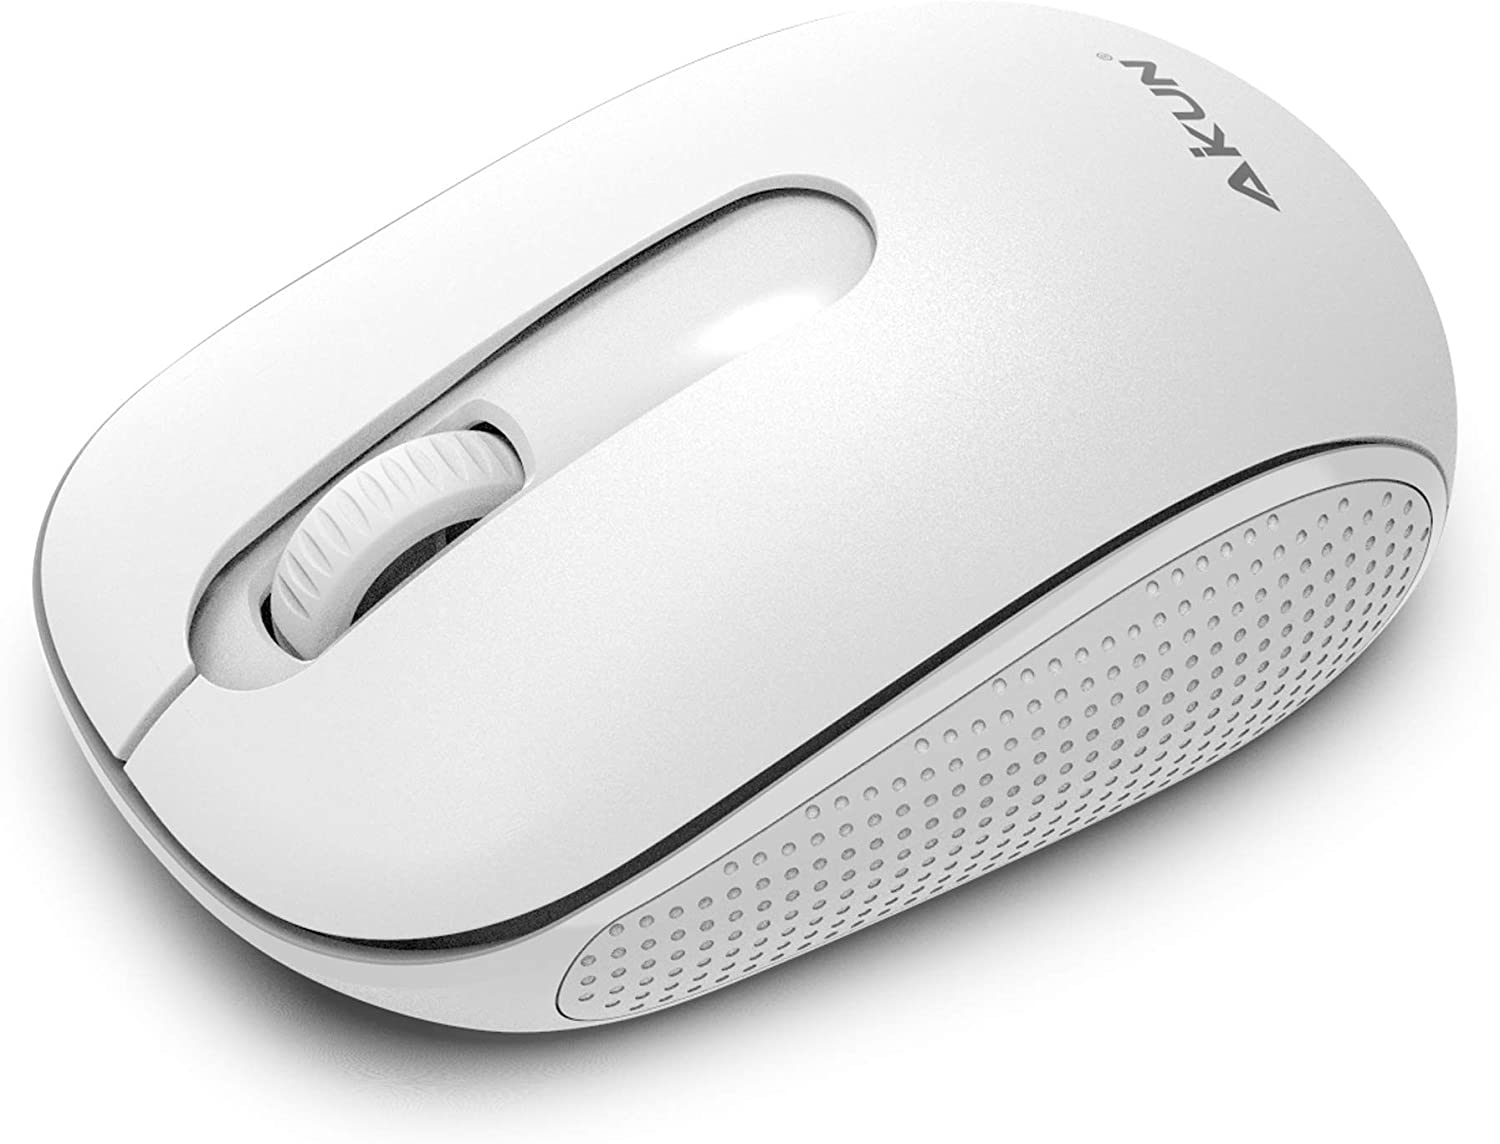 AIKUN Wireless Mouse 2.4G Noiseless Receiver Be super welcome with Weekly update USB P -